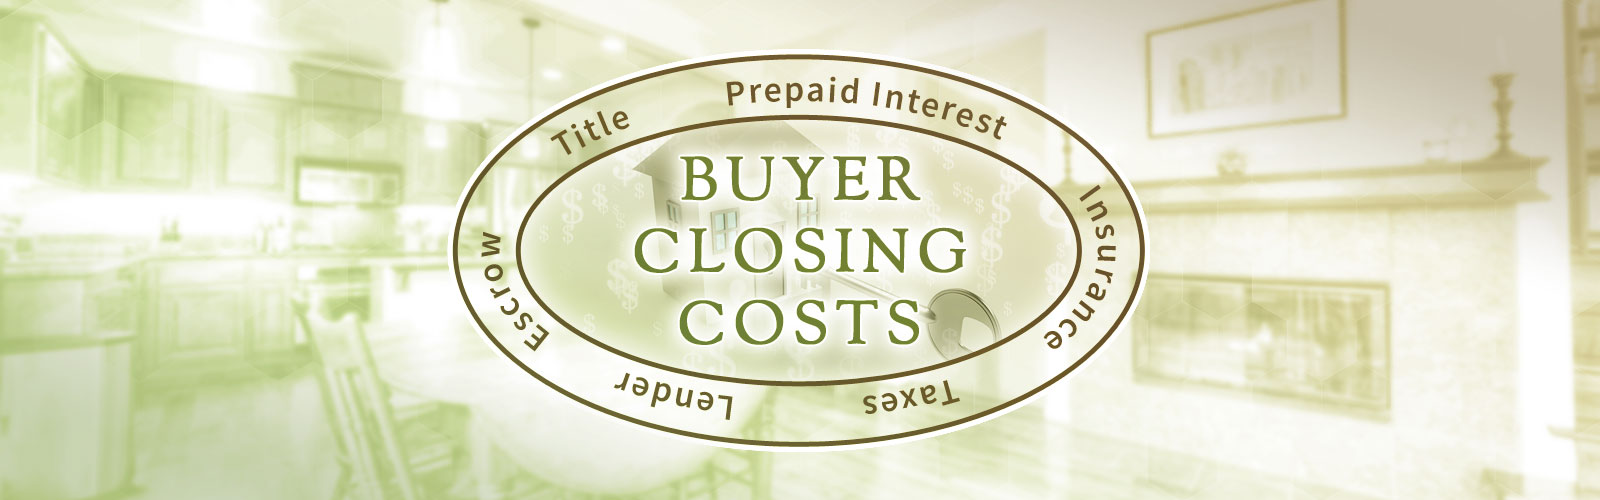 Buyer Closing Costs - Buying a Home in California